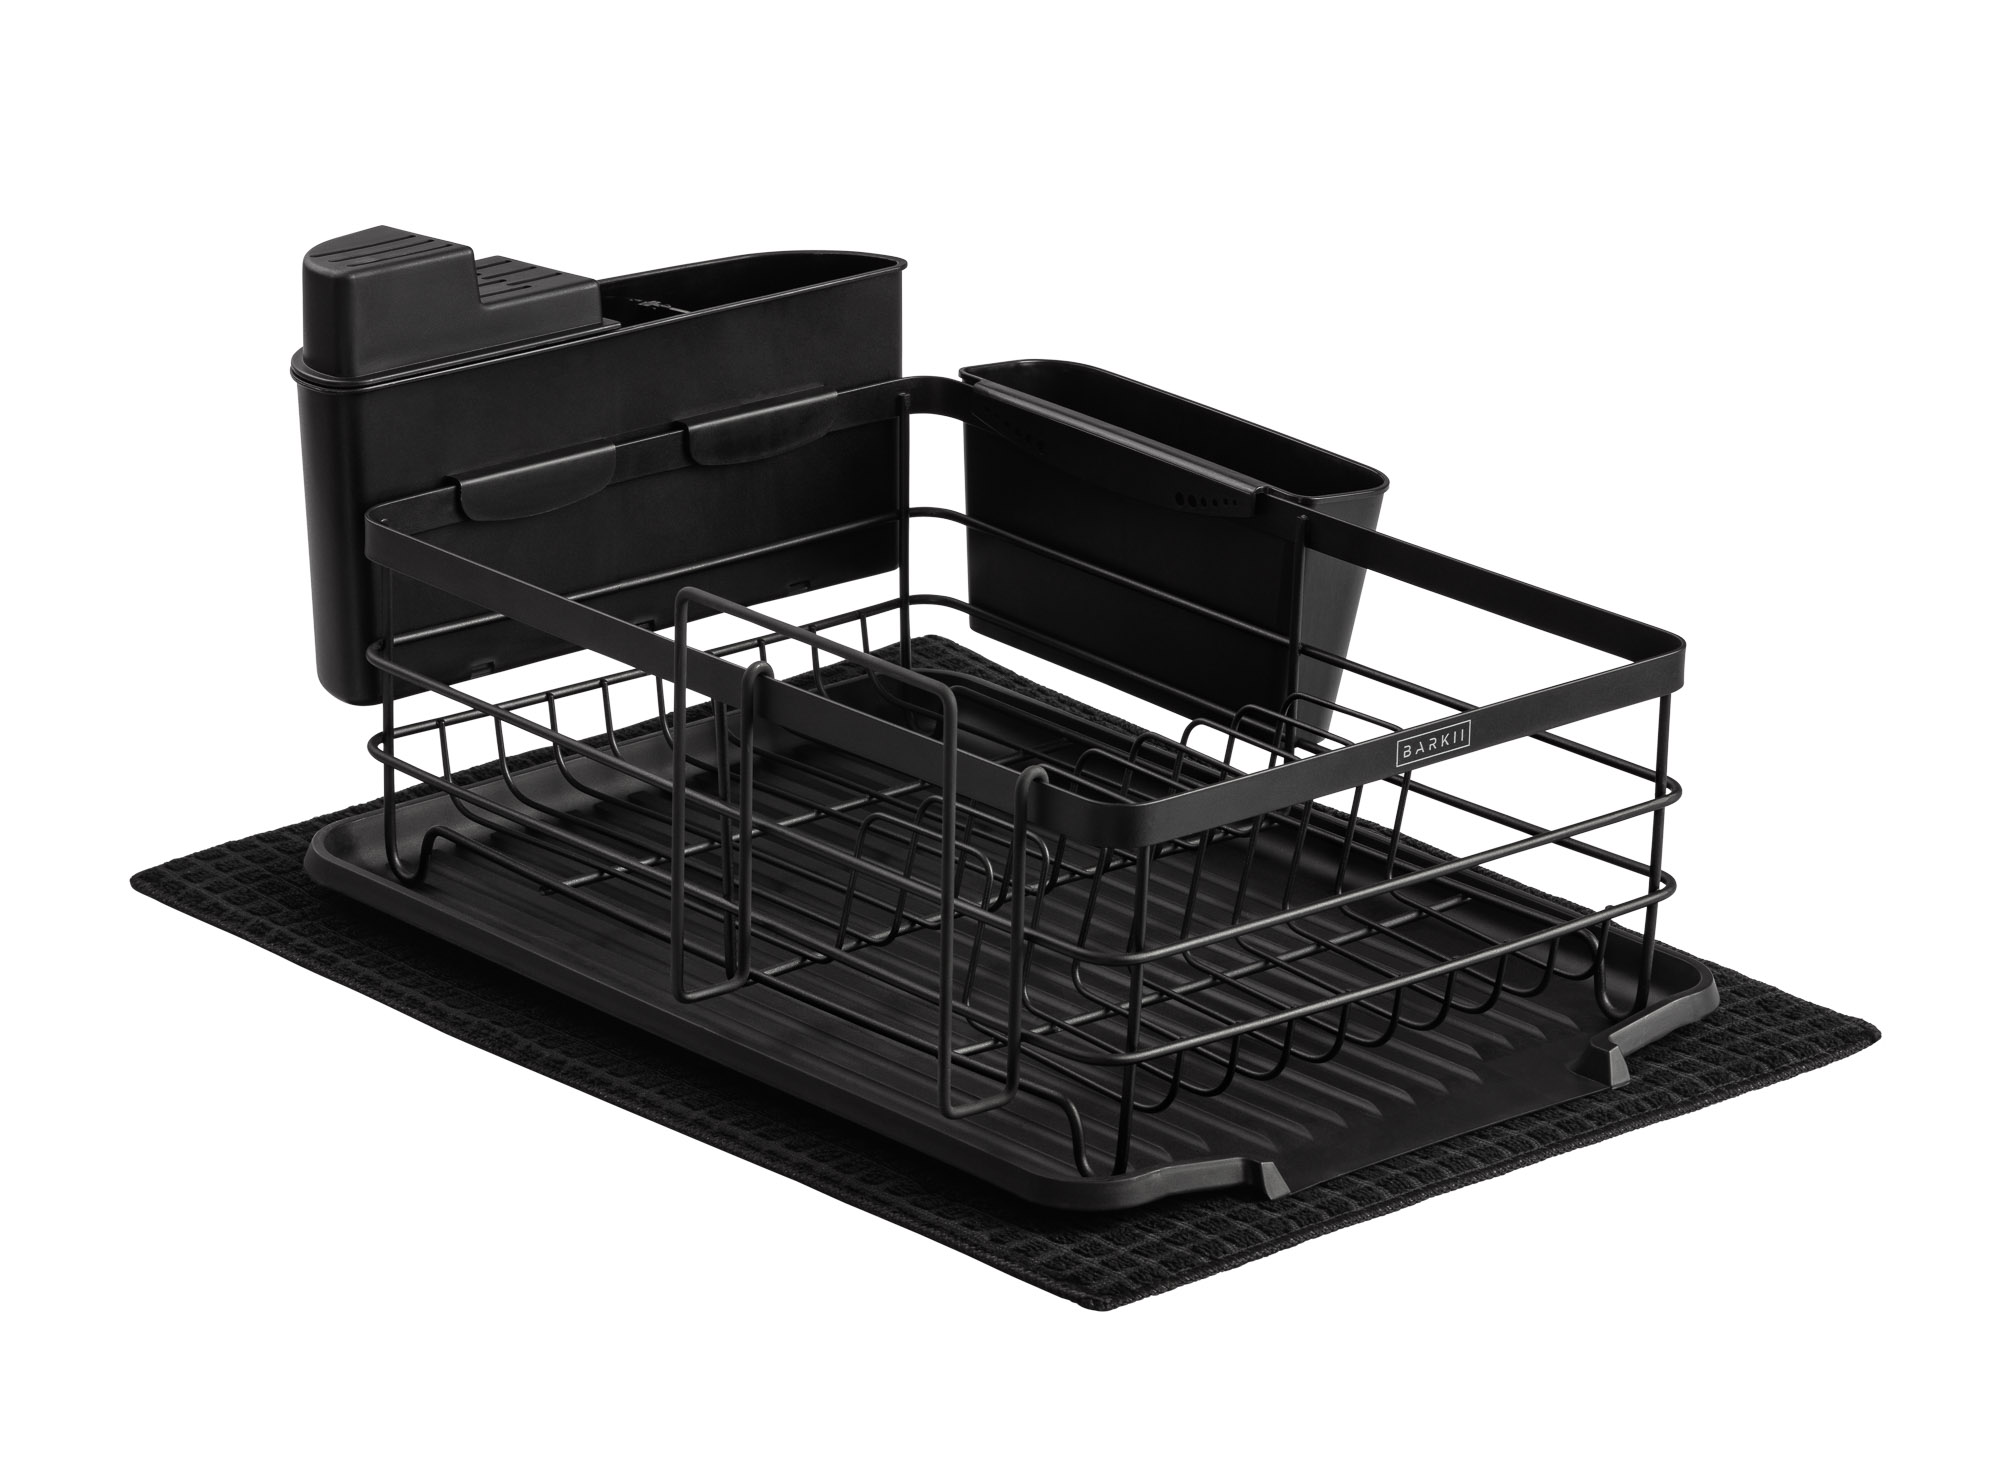 Dish Rack All parts - Product photo for Amazon